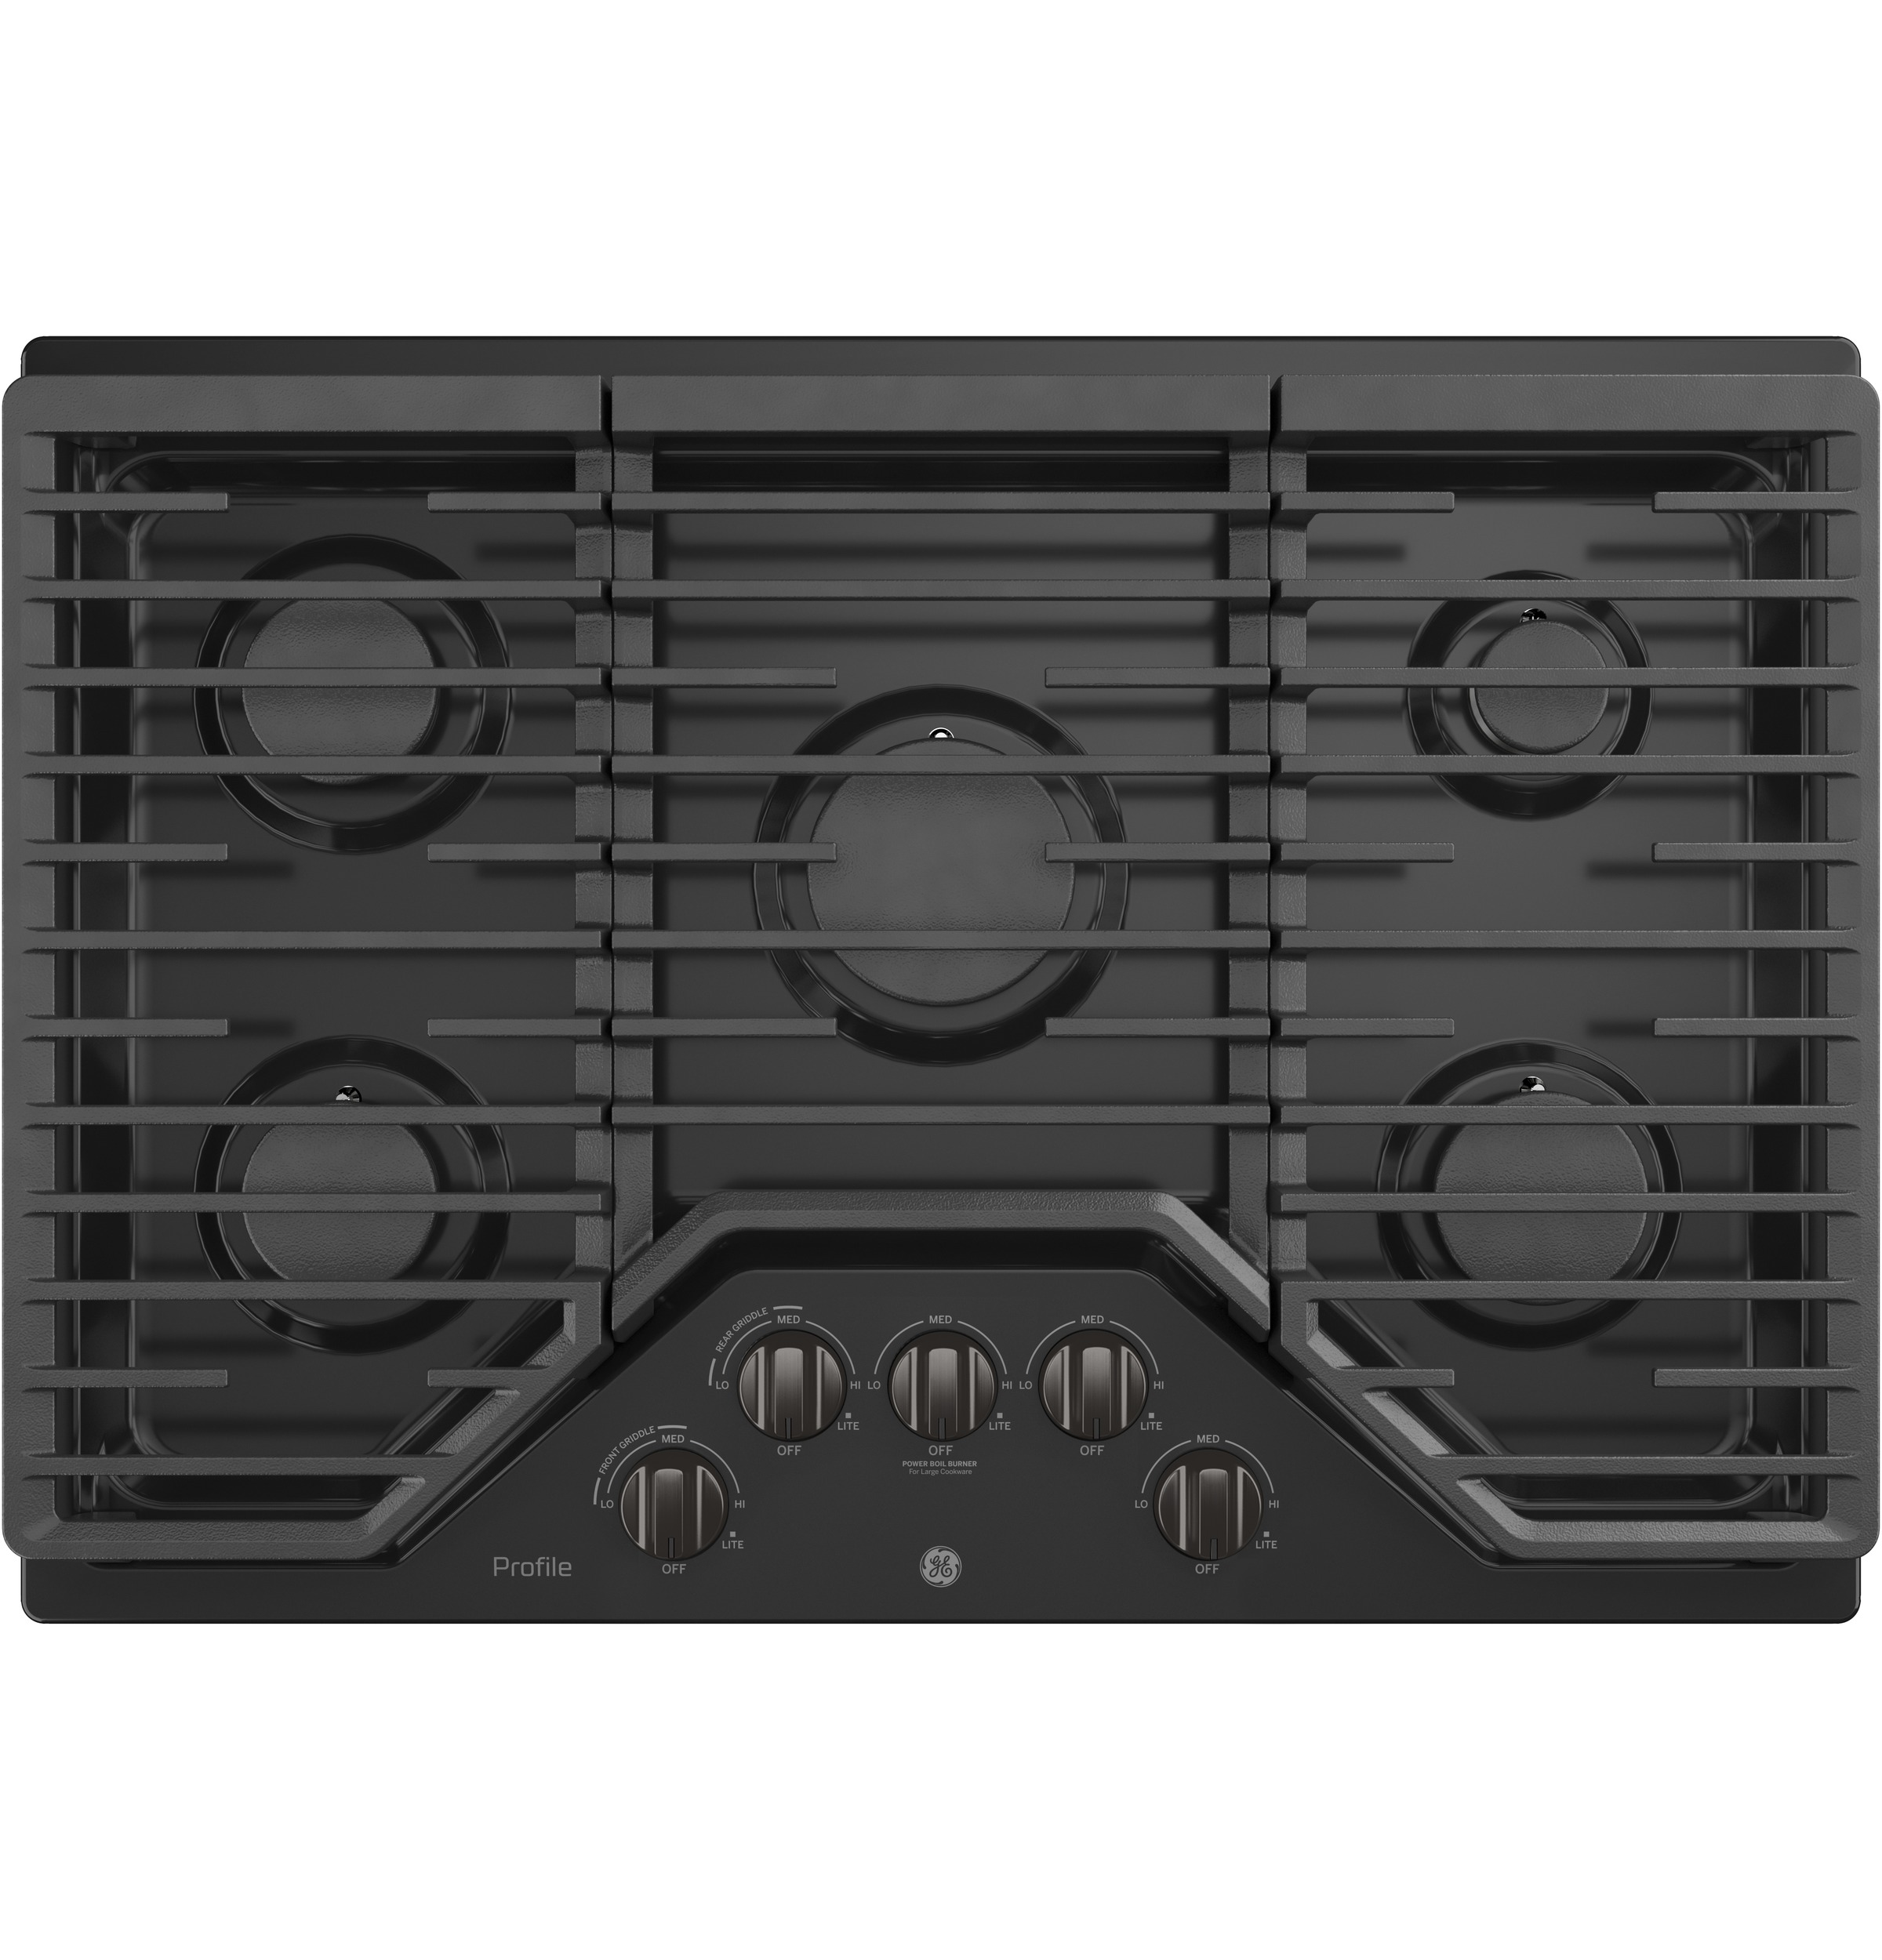 "GE Profile GE Profile™ 30"" Built-In Gas Cooktop with 5 Burners and Optional Extra-Large Cast Iron Griddle"